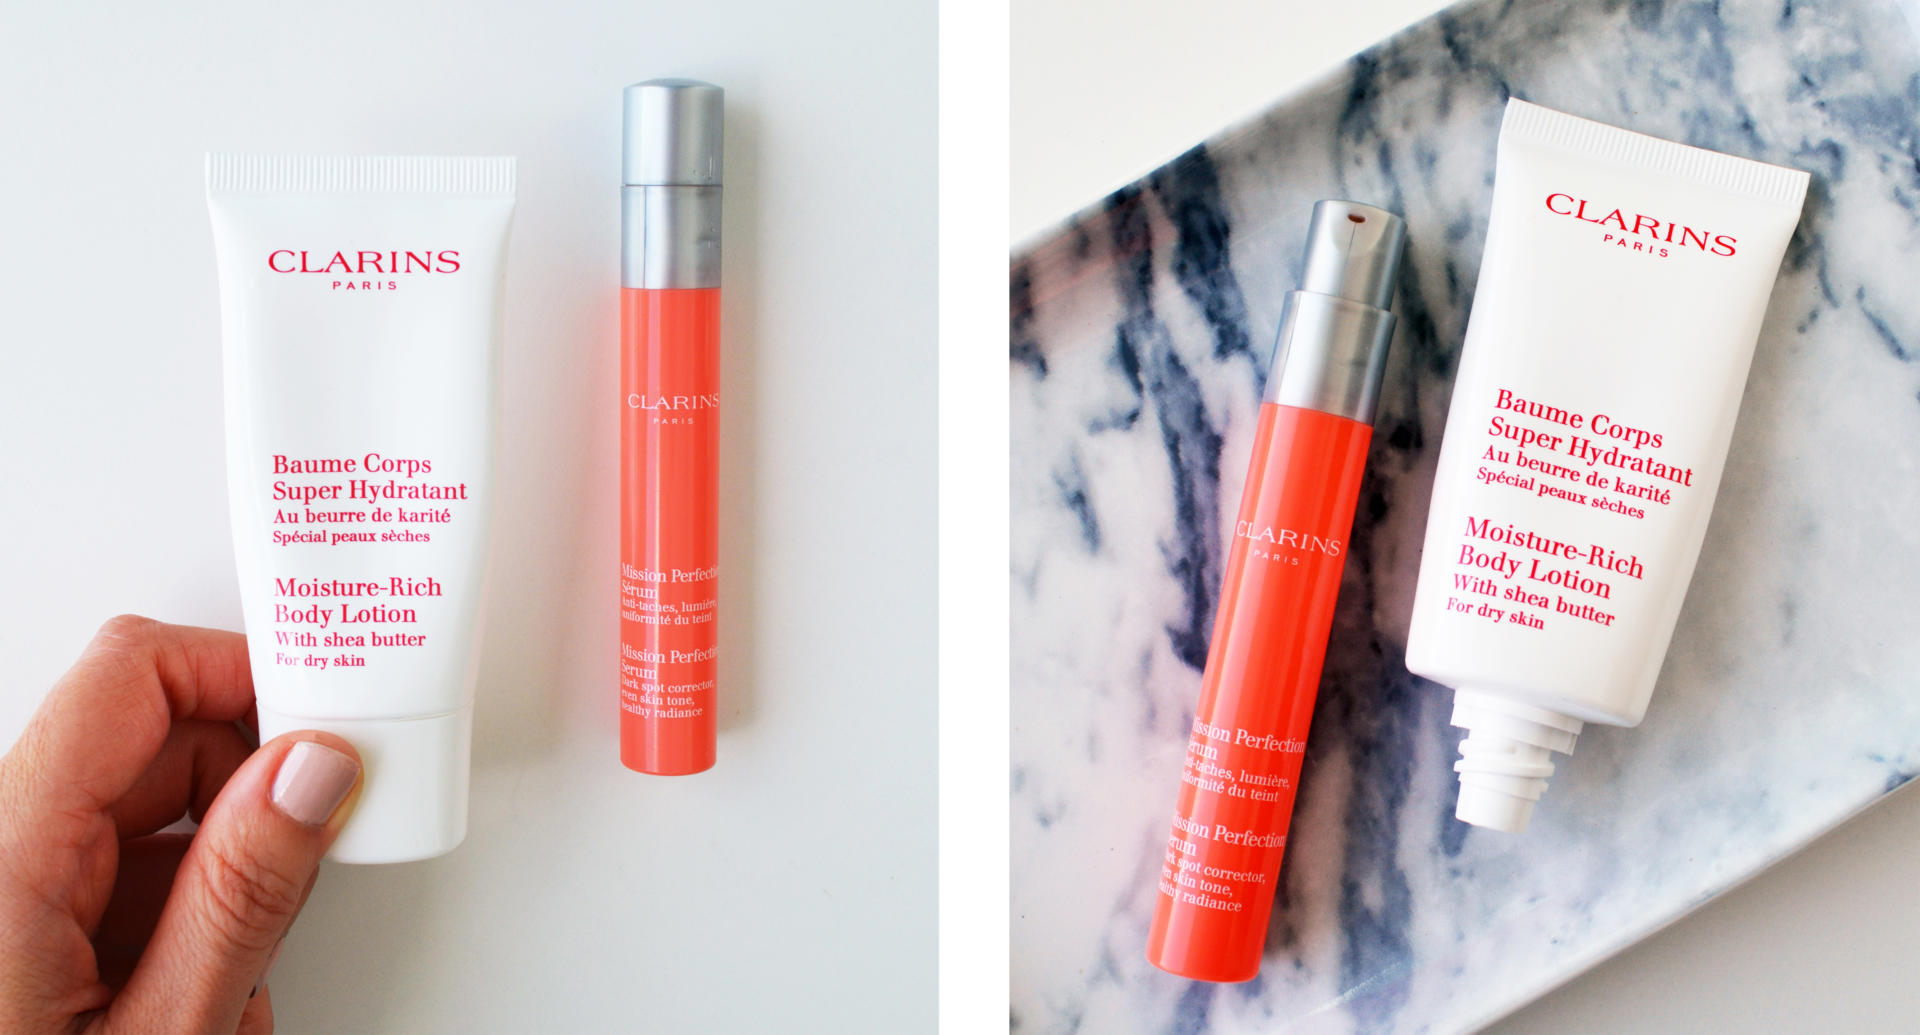 Clarins Mission Perfection Serum, Clarins Moisture-Rich Body Lotion